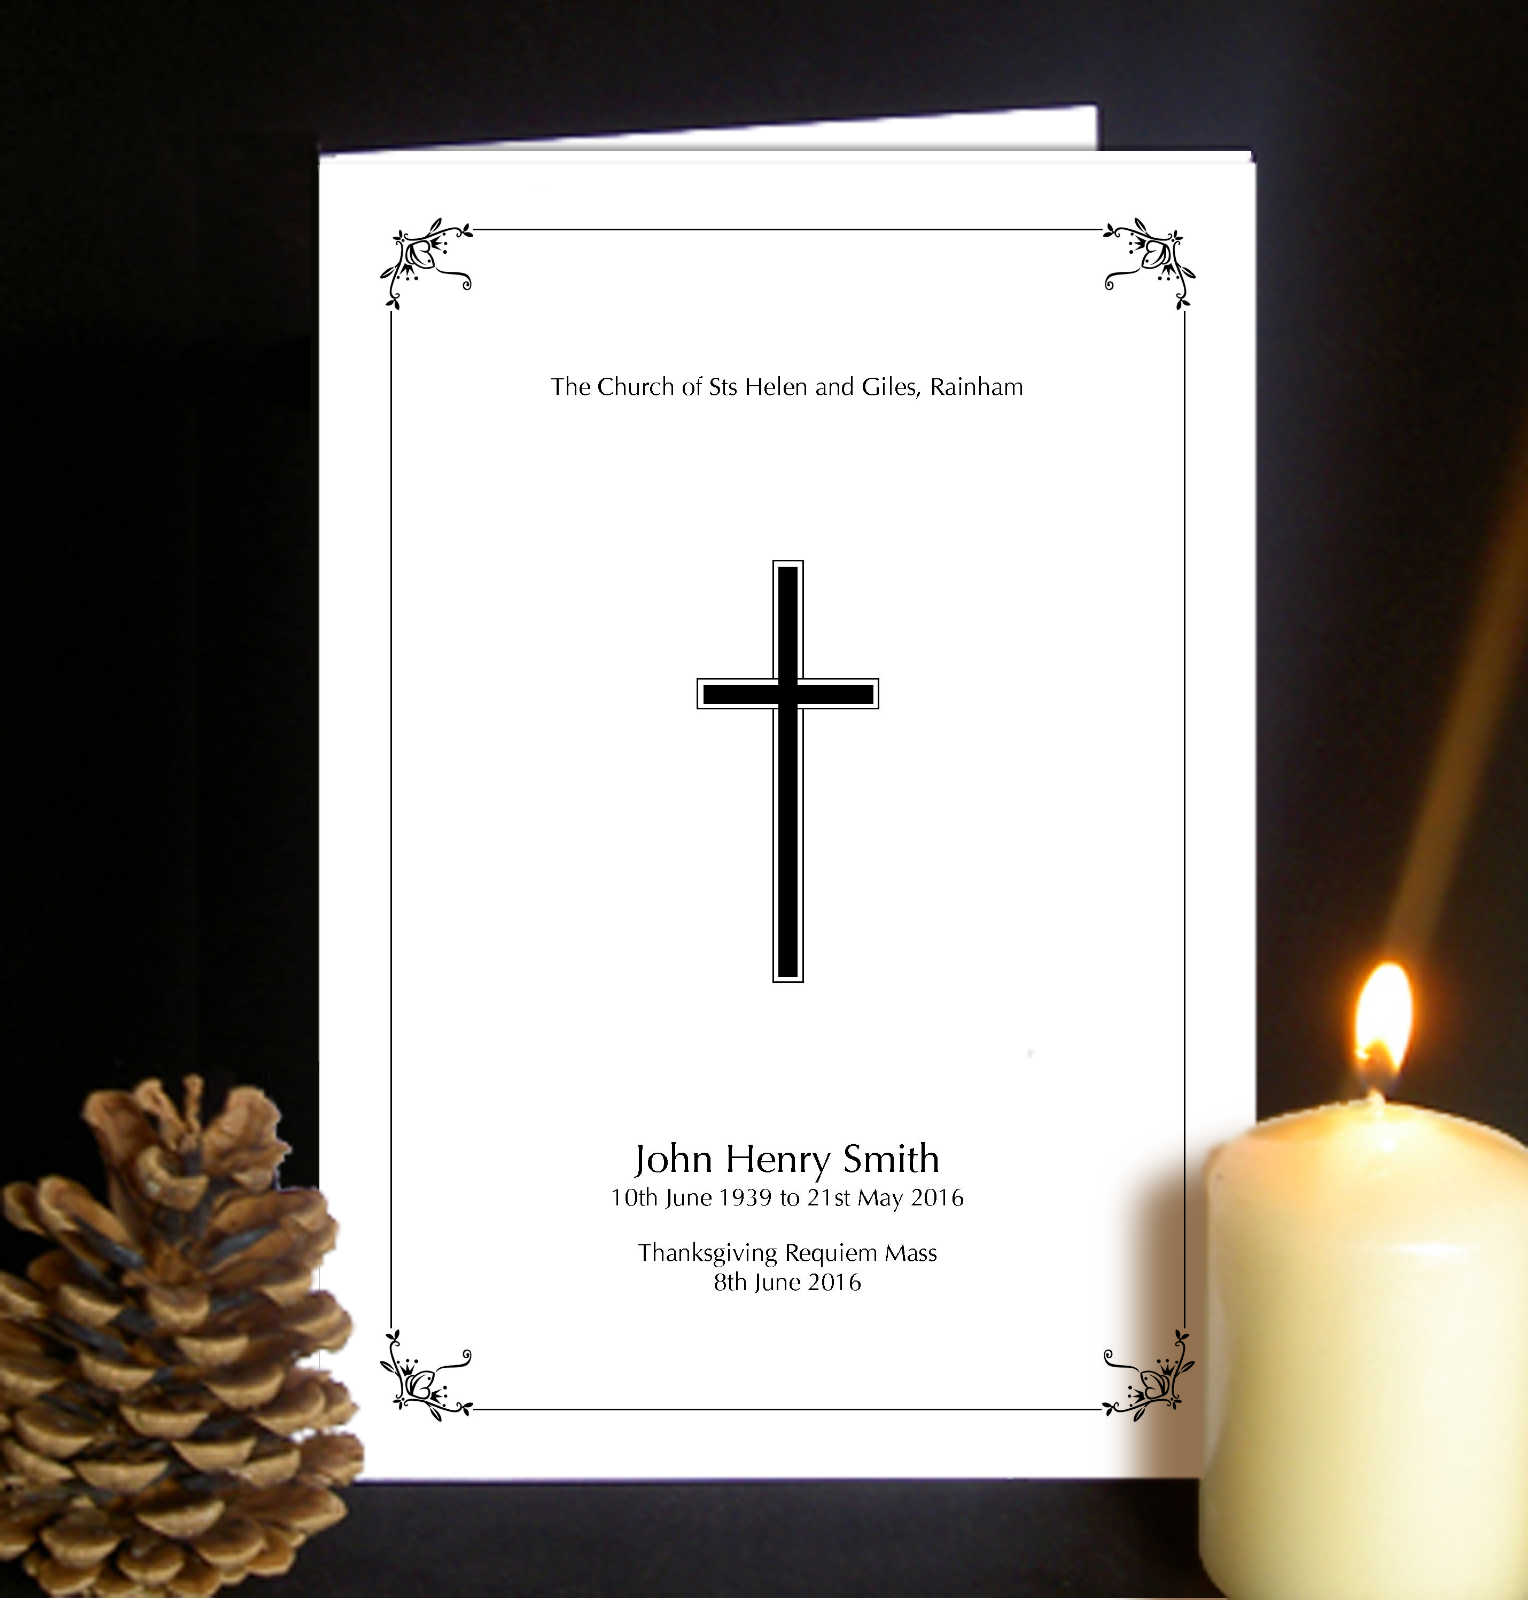 funeral order of service cross and border design fos08